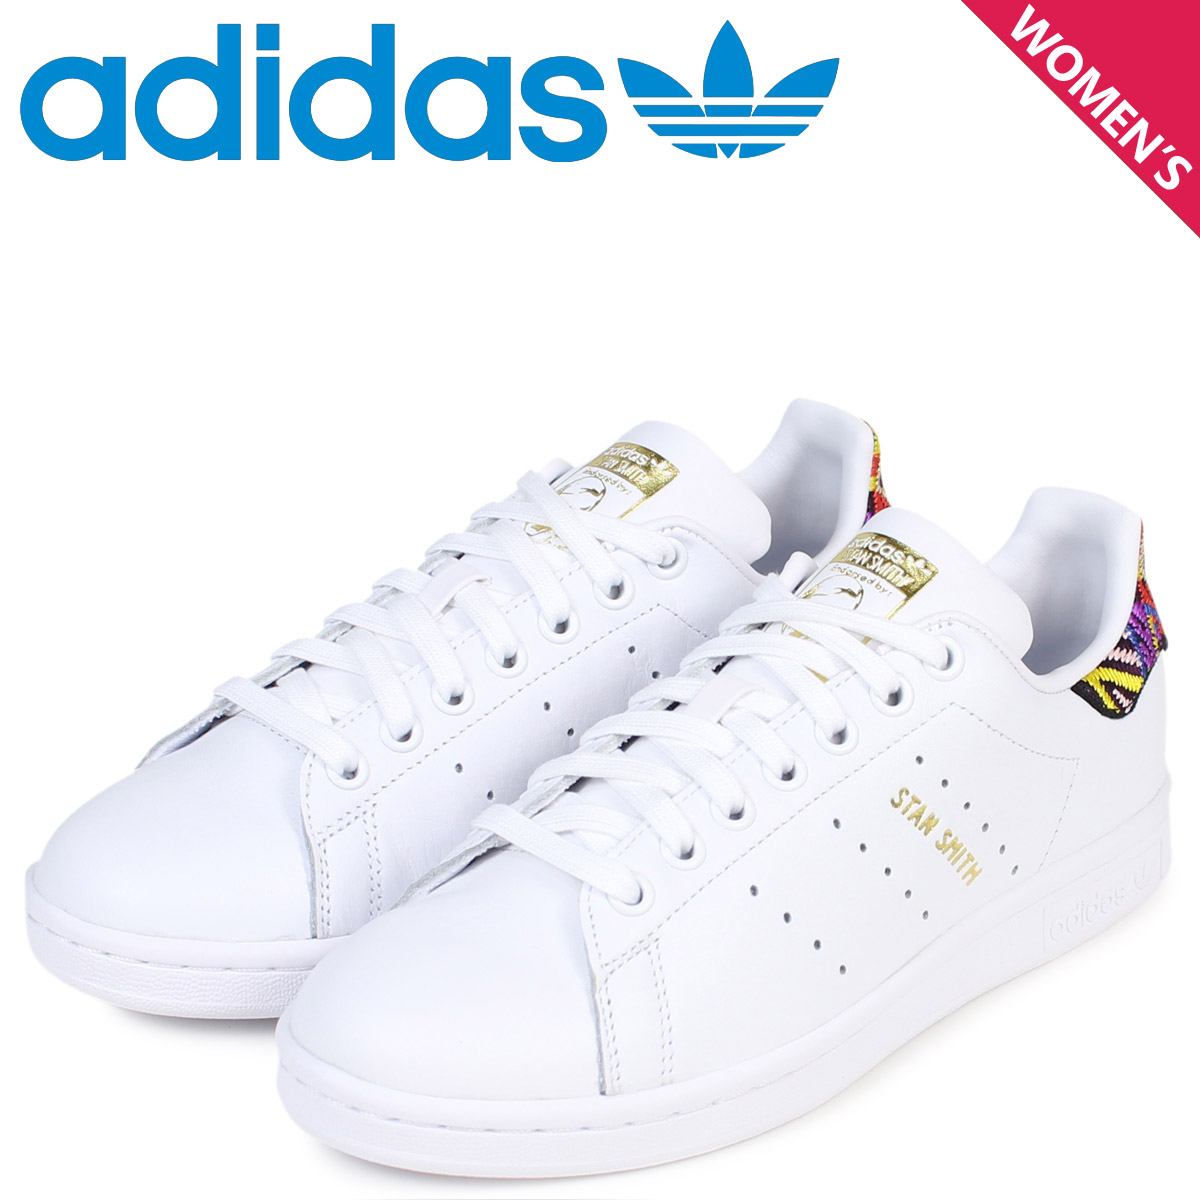 adidas originals Stan Smith Lady's Adidas sneakers STAN SMITH W CQ2814 shoes white [load planned Shinnyu load in reservation product 12/21 containing]